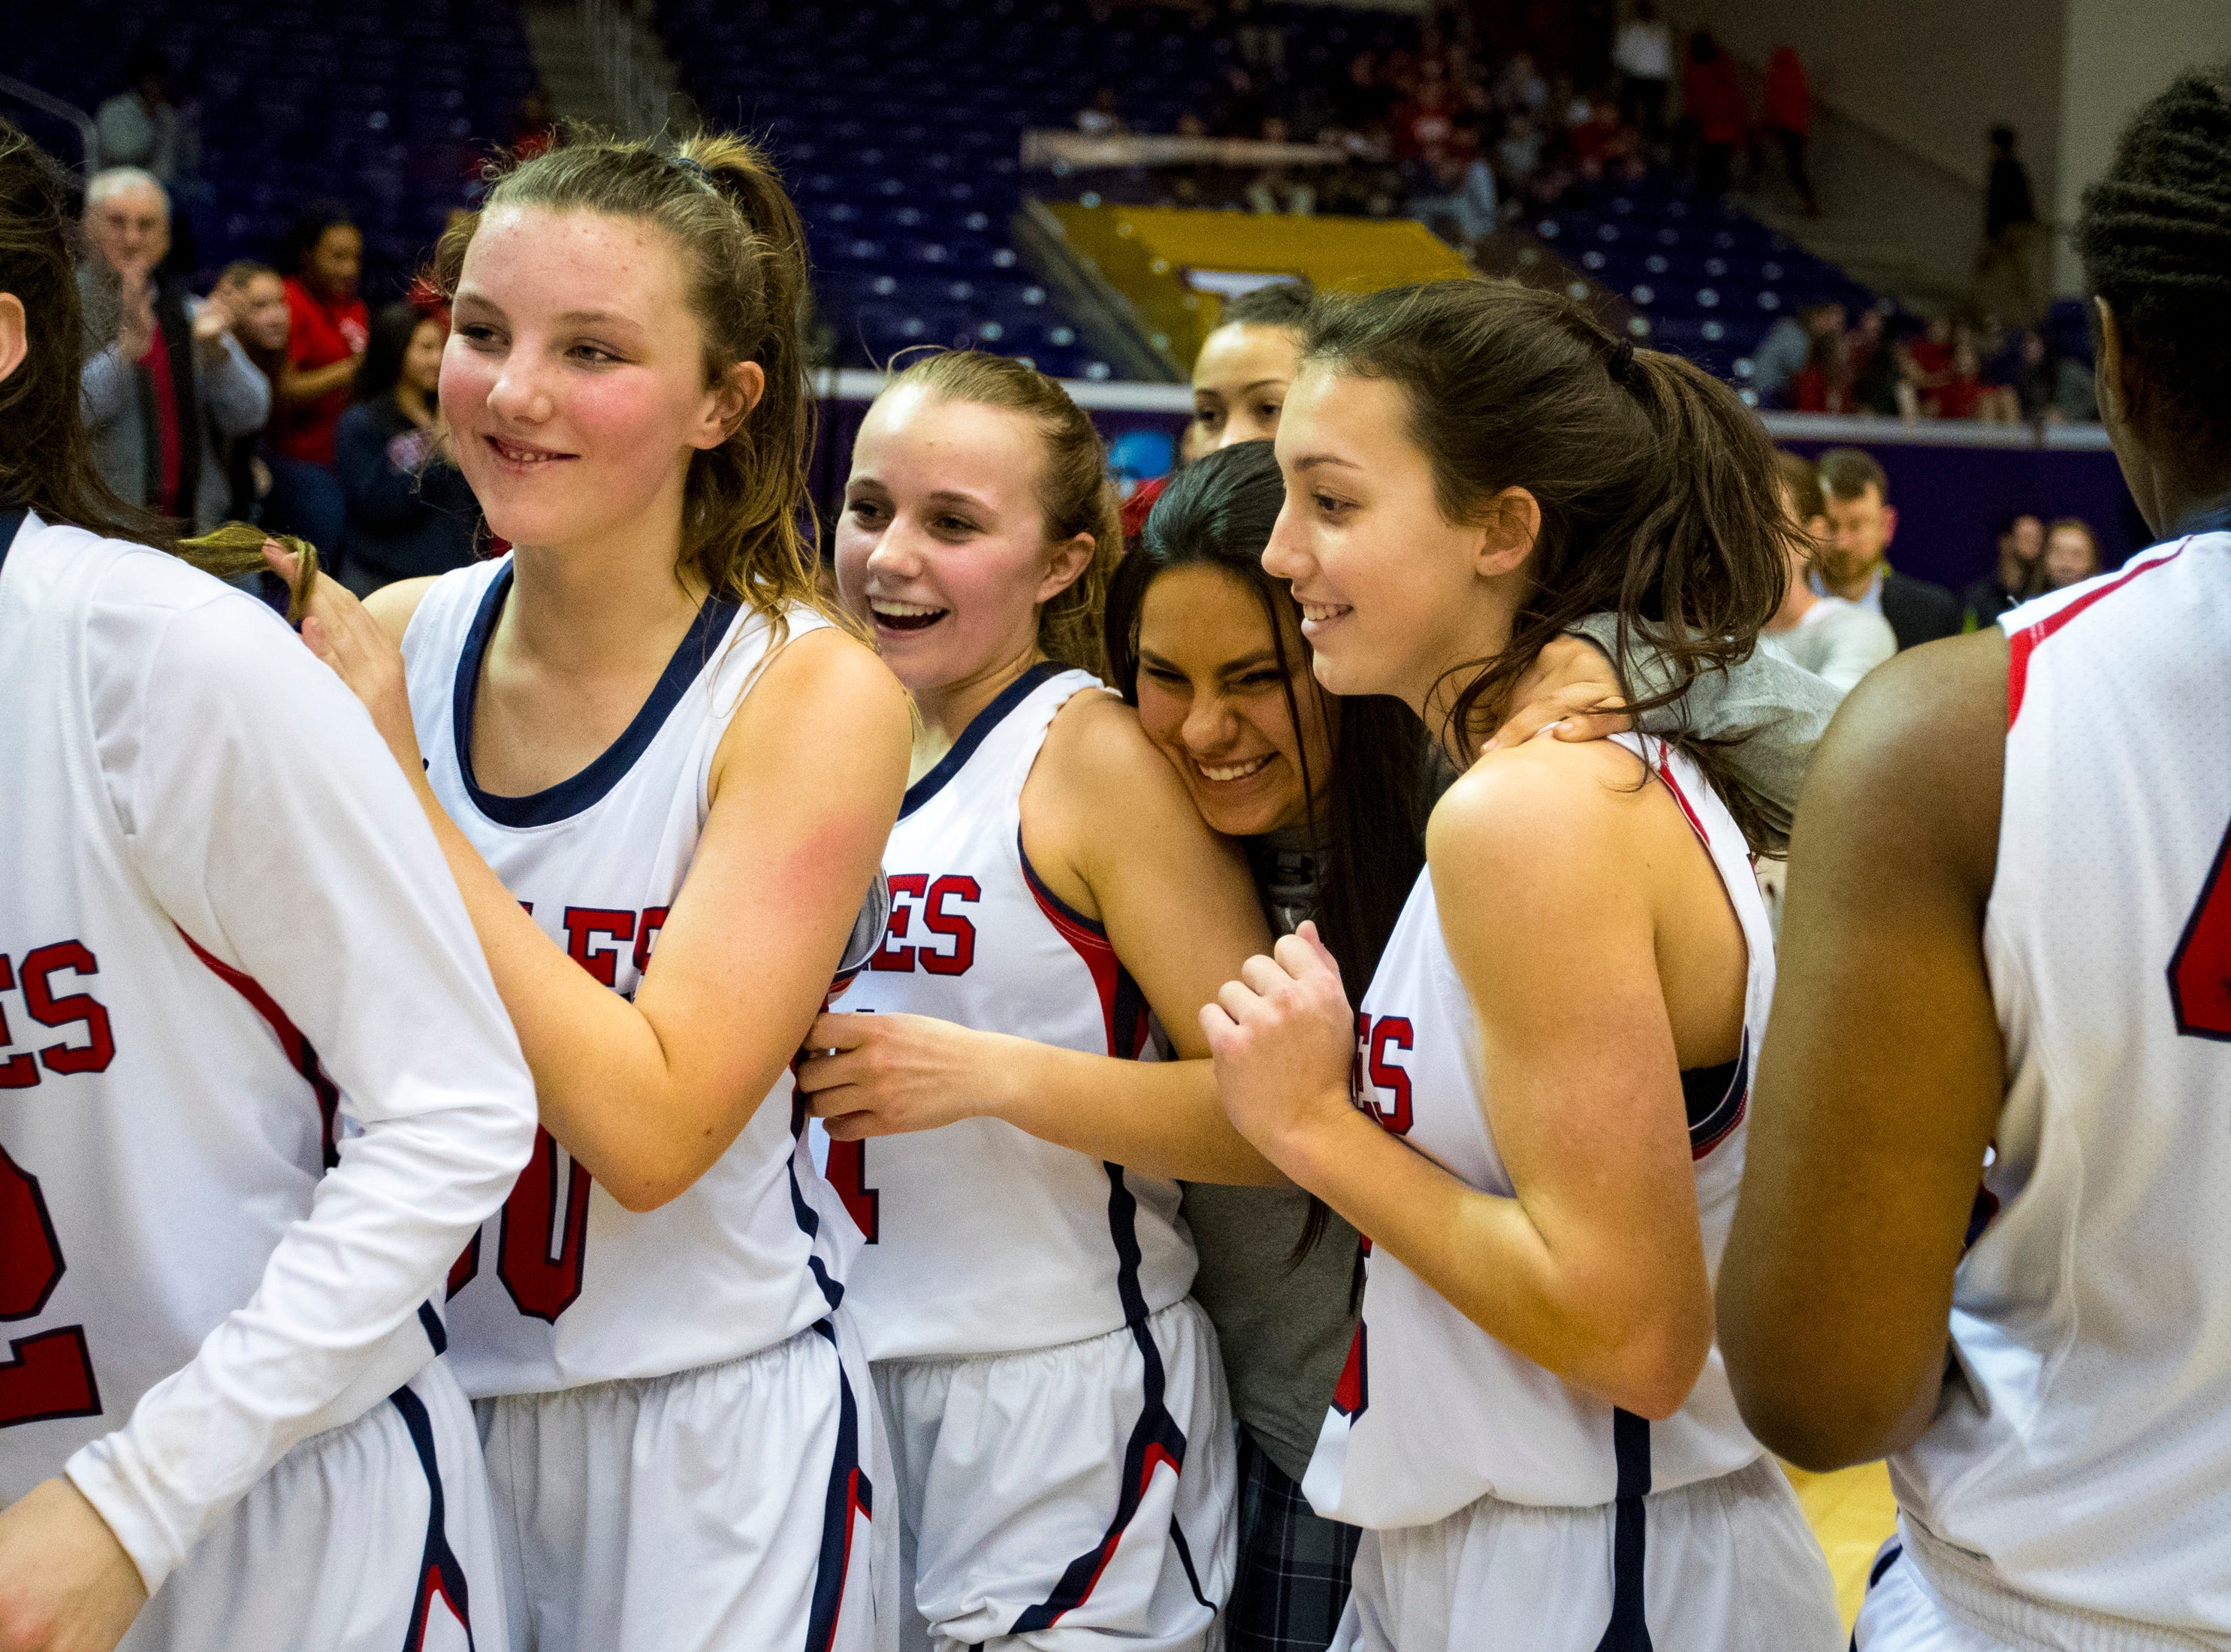 Brentwood Academy's players line up to shake hands after Brentwood Academy's game against Father Ryan in the semifinal round of the TSSAA Division II Class AA State Championships at Lipscomb University's Allen Arena in Nashville on Thursday, Feb. 28, 2019.